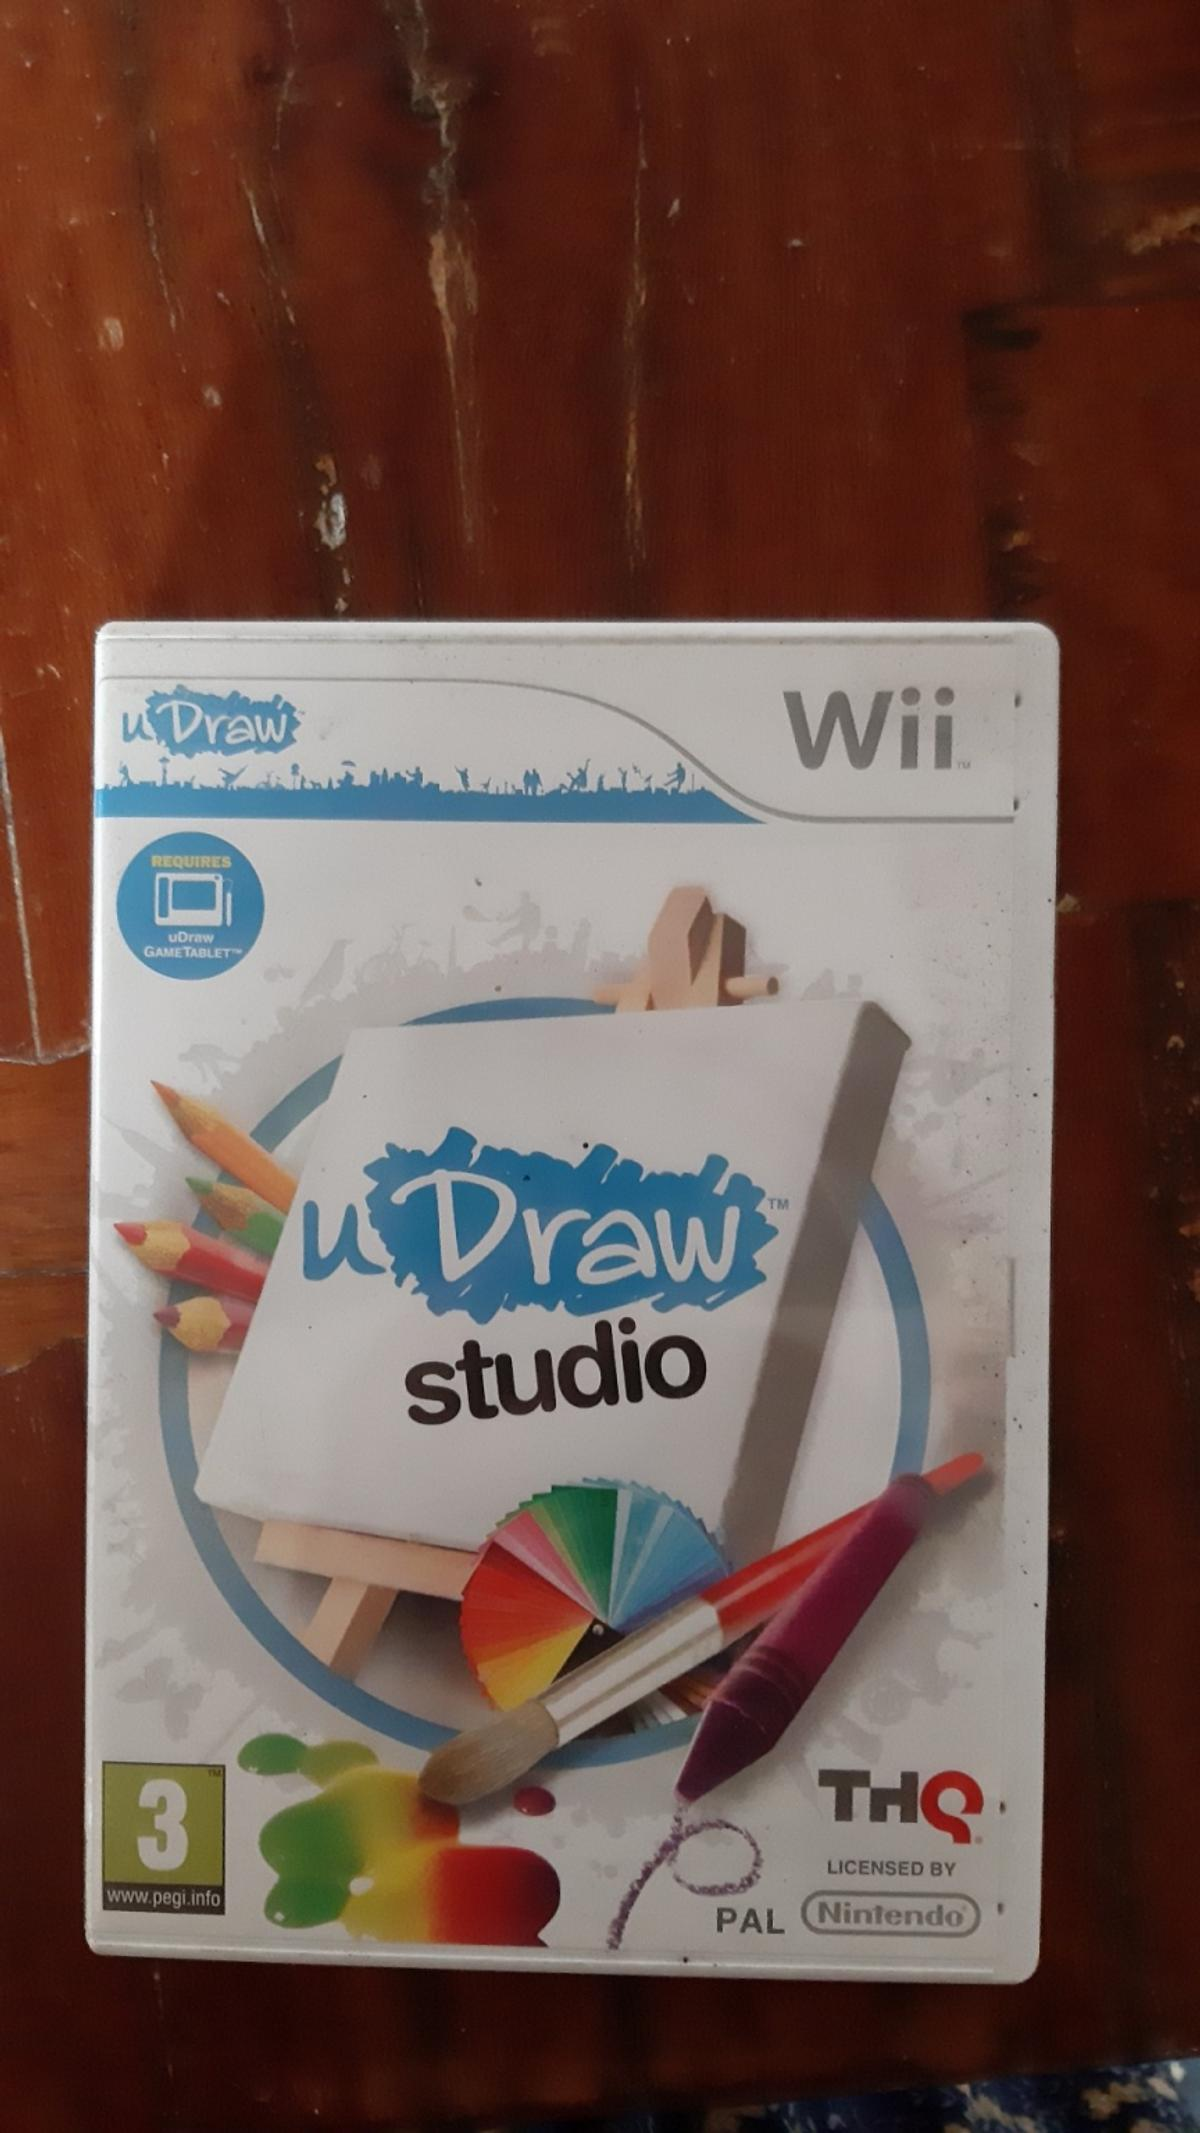 drawing games for wii u Wii U Draw Games And Tablet In DY5 Dudley For 500 For